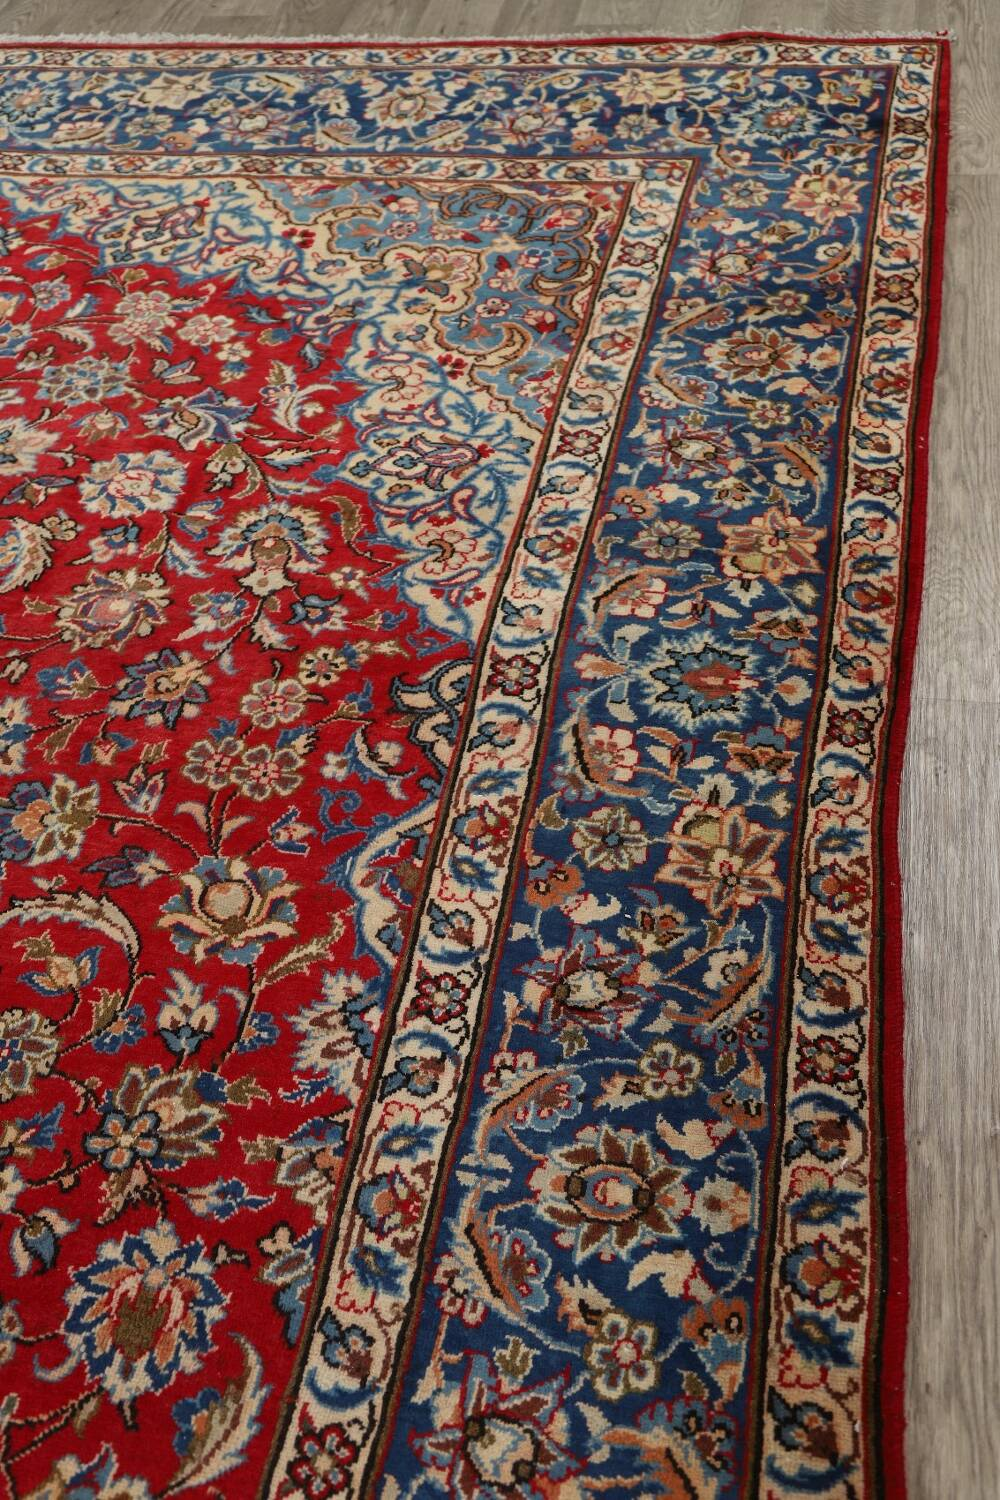 10x15 Room: Vintage Floral Najafabad Persian Area Rug 10x15 Large